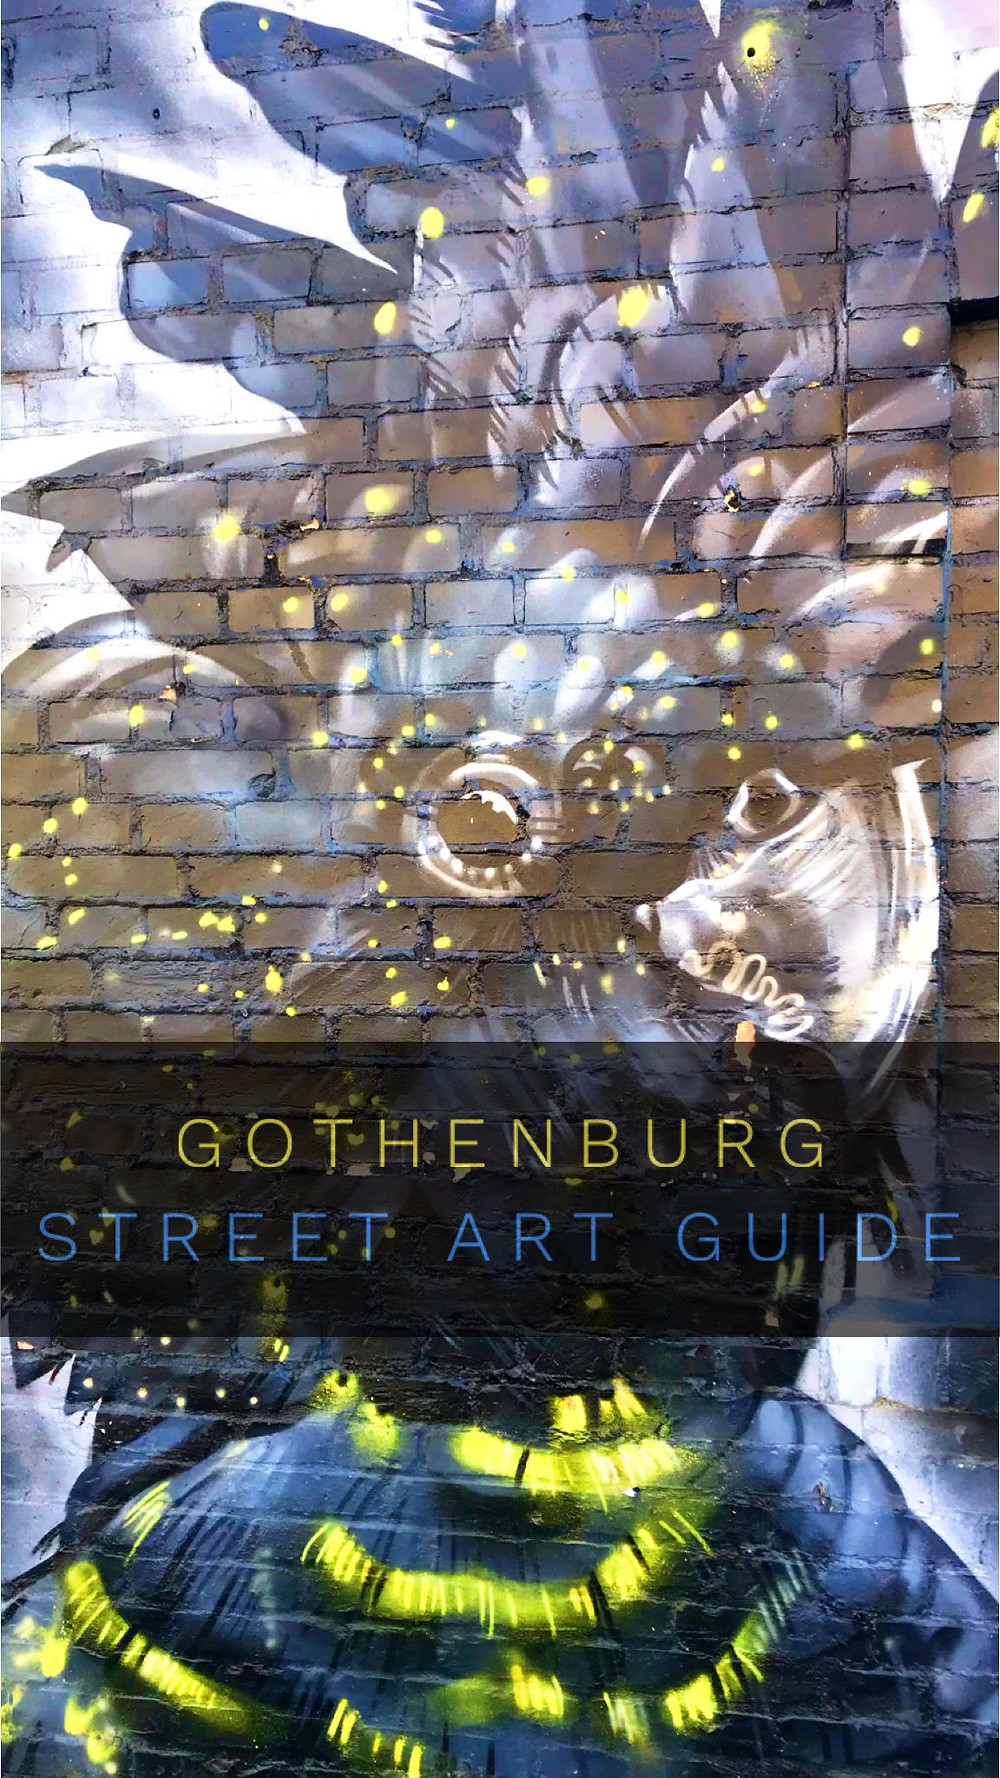 Gothenburg Street Art Guide on Sticks & Spoons Food and Travel! Follow us on Street Art Cities to find great Street Art in Gothenburg, Sweden!